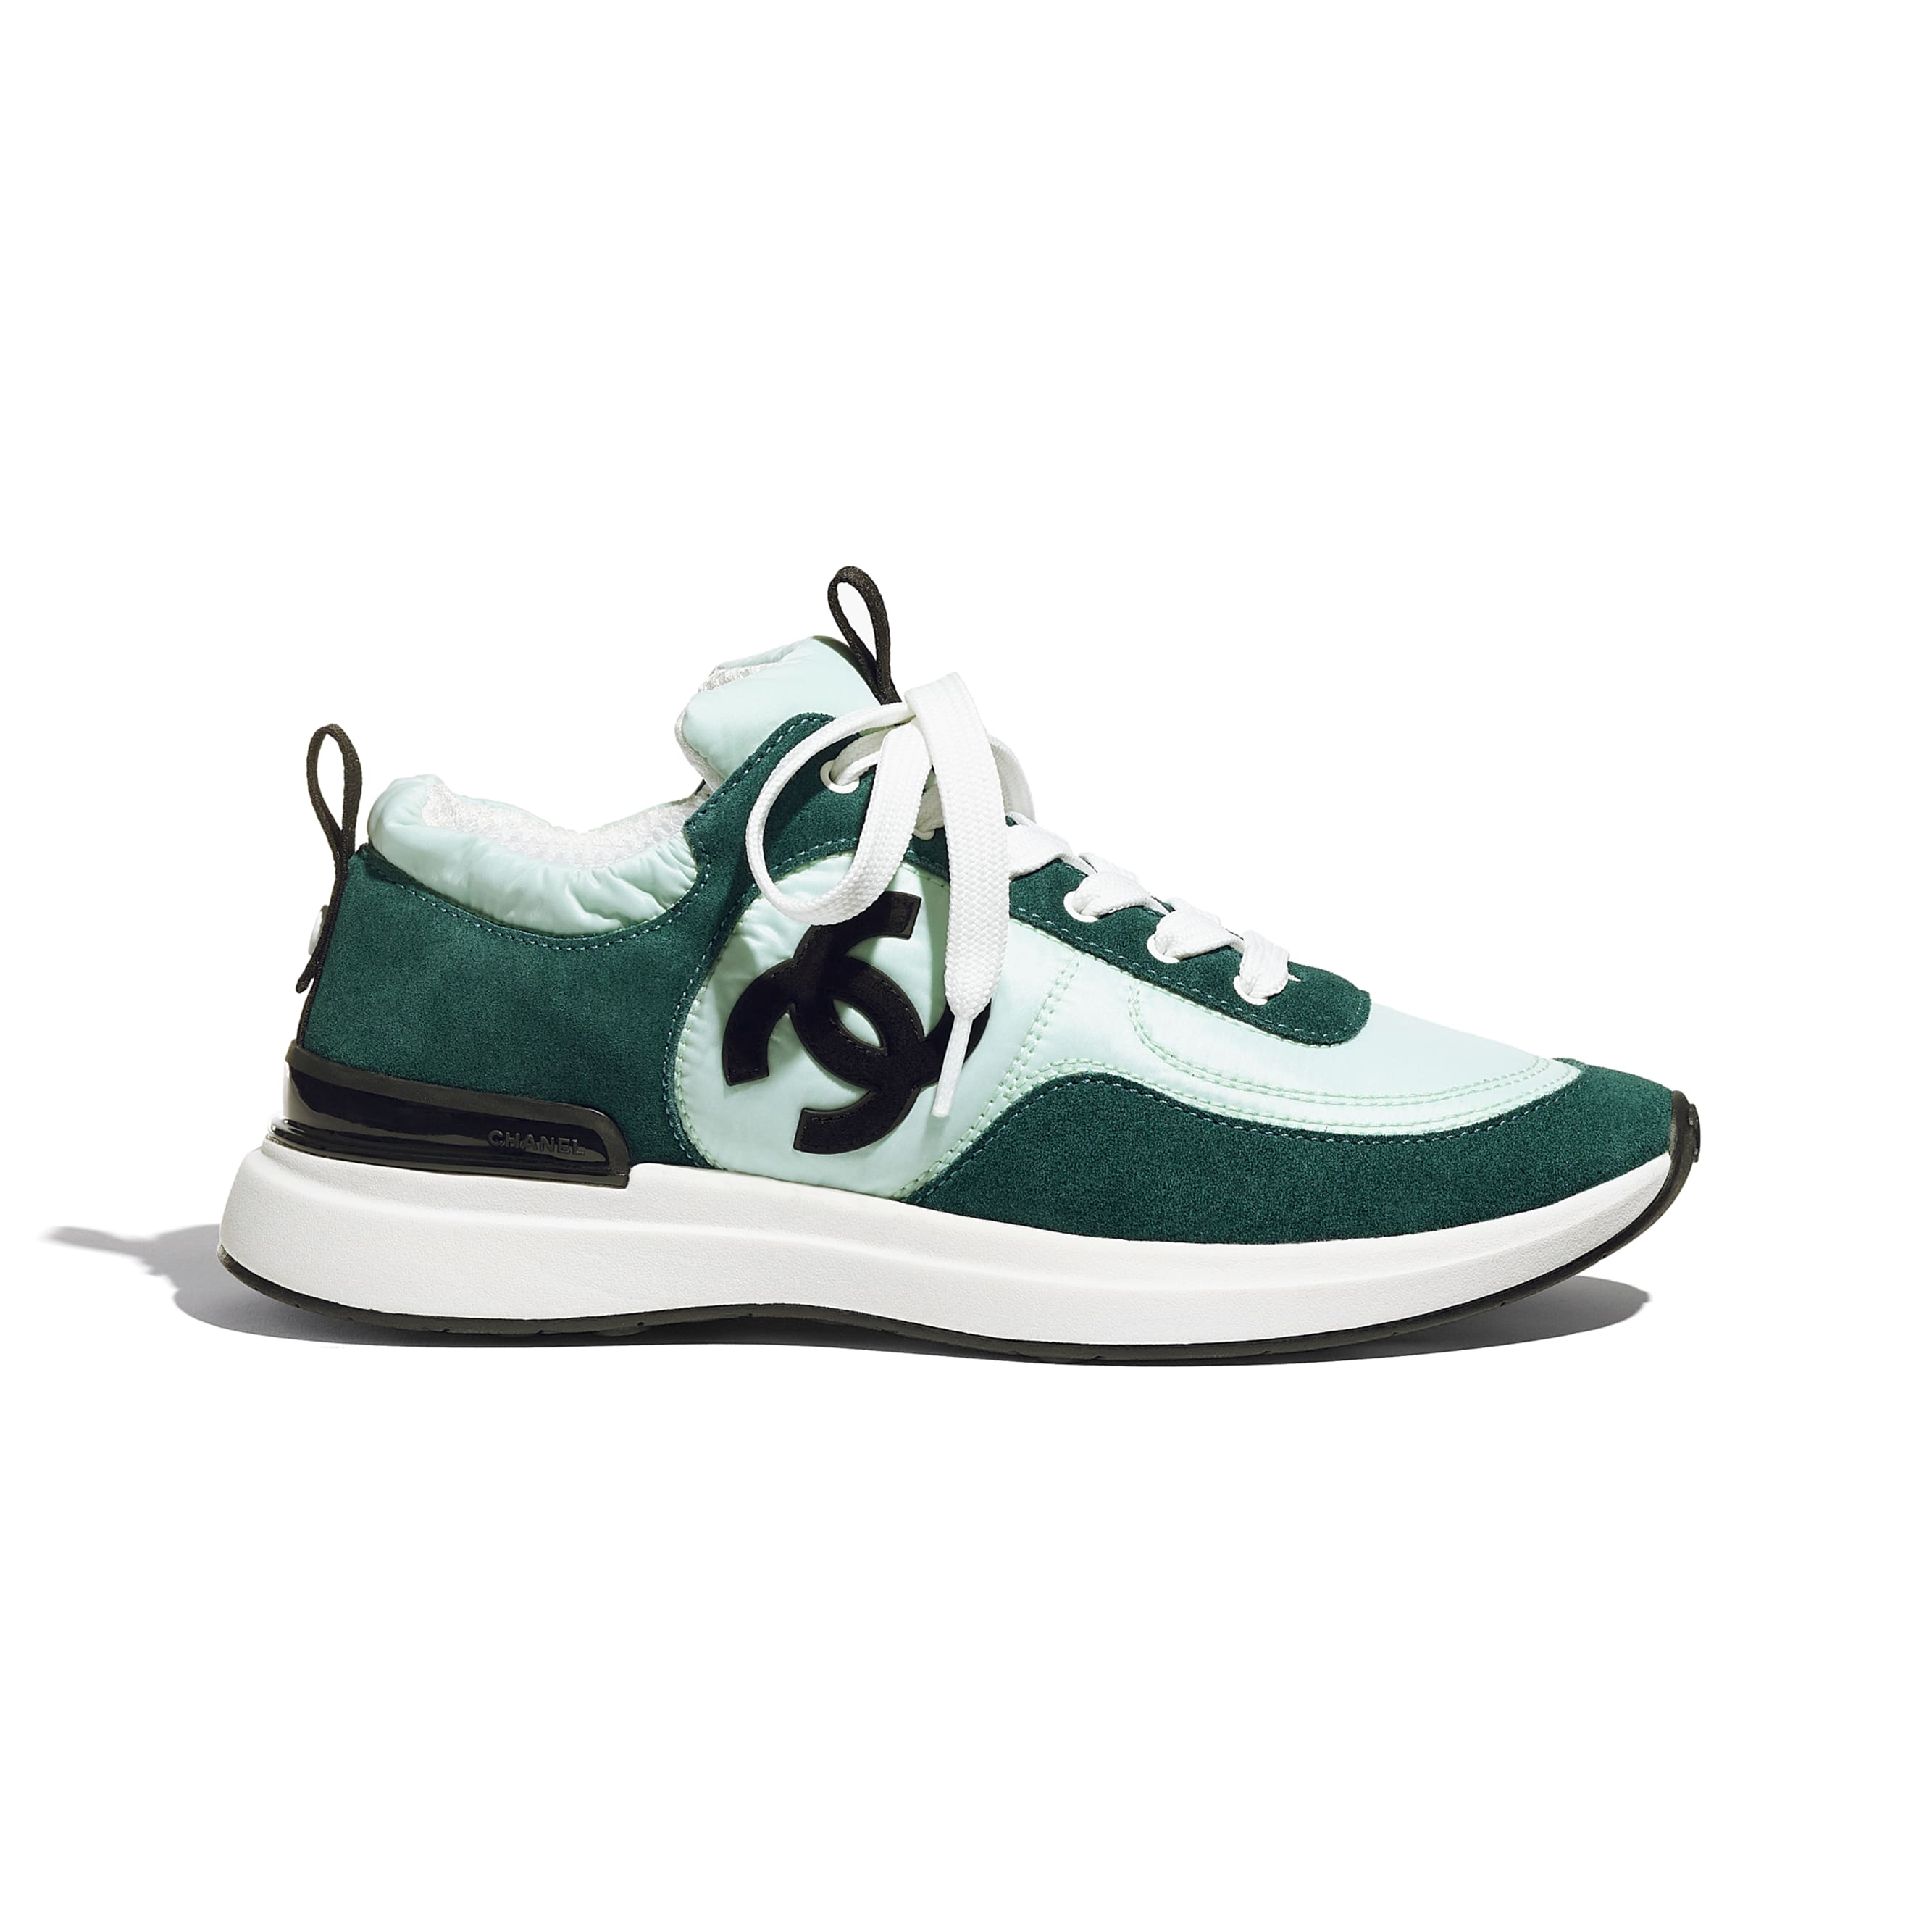 Trainers - Light Green & Green - Suede Calfskin & Nylon - CHANEL - Default view - see standard sized version